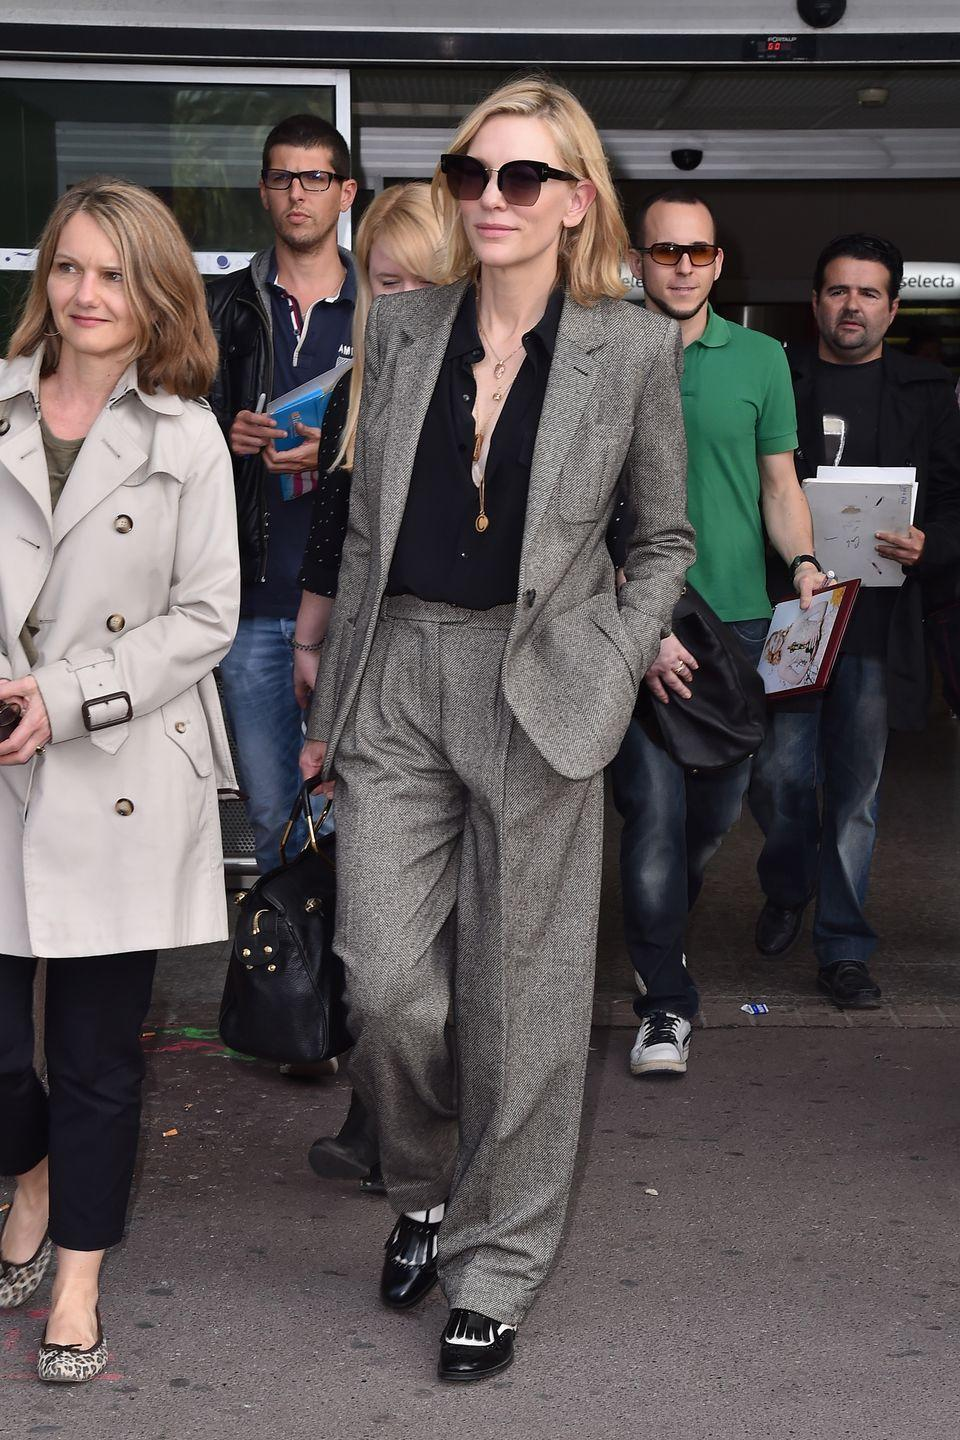 <p><strong>Cate Blanchett, 2018: </strong>We did not get the pantsuit at the airport memo. Though the off-the-plane look seems polished, is it actually comfy <em>in flight?</em> <br></p>